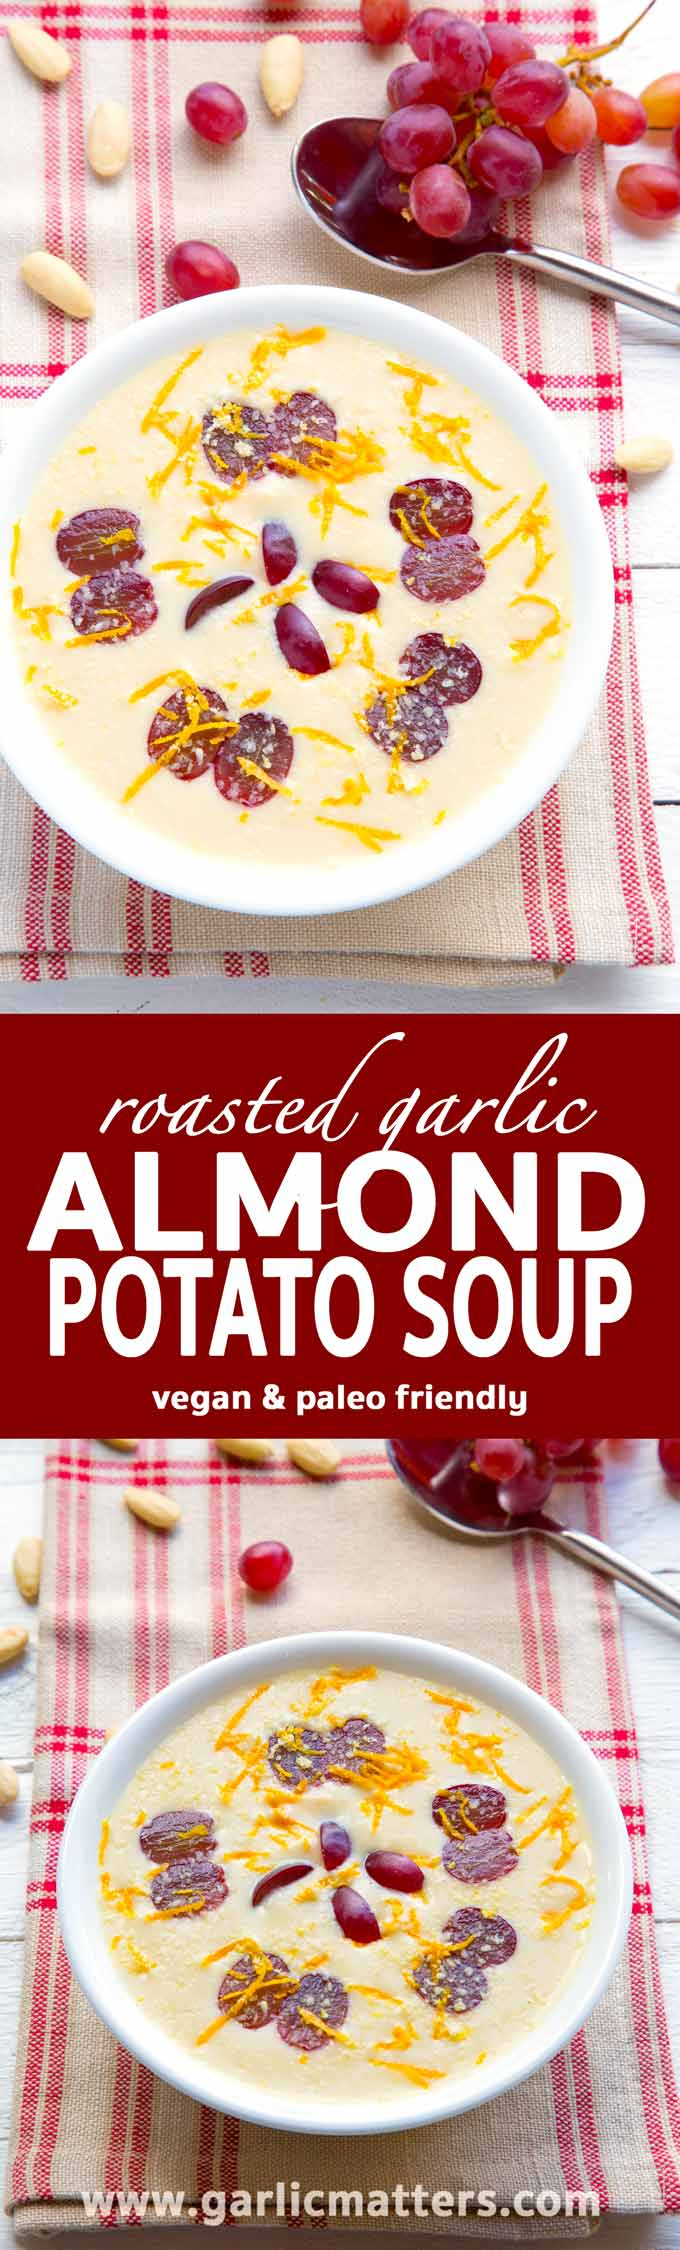 Roasted Garlic Almond Potato Soup - Surprise you friends with this amazing Spanish appetizer for lunch or dinner. Vegan and paleo friendly.